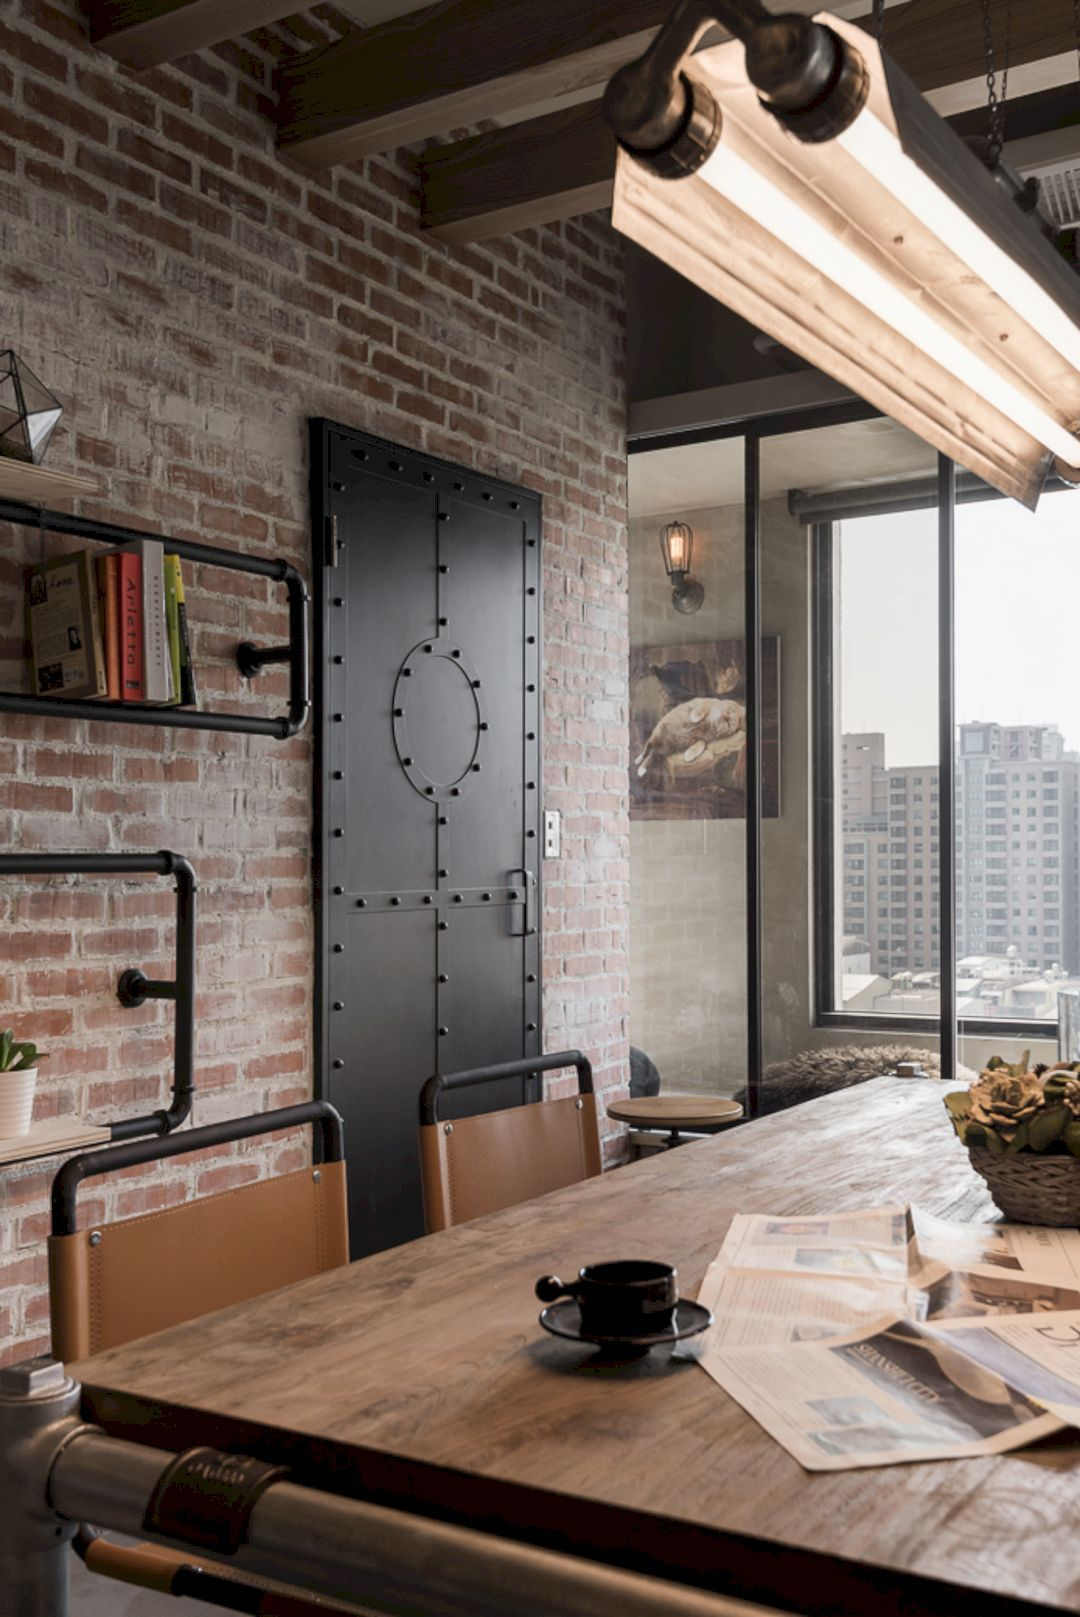 Recall Casa The Residential Of A Couple With Industrial Style And Vintage Interior Design Industrial Home Design Industrial Interior Design Urban Industrial Decor